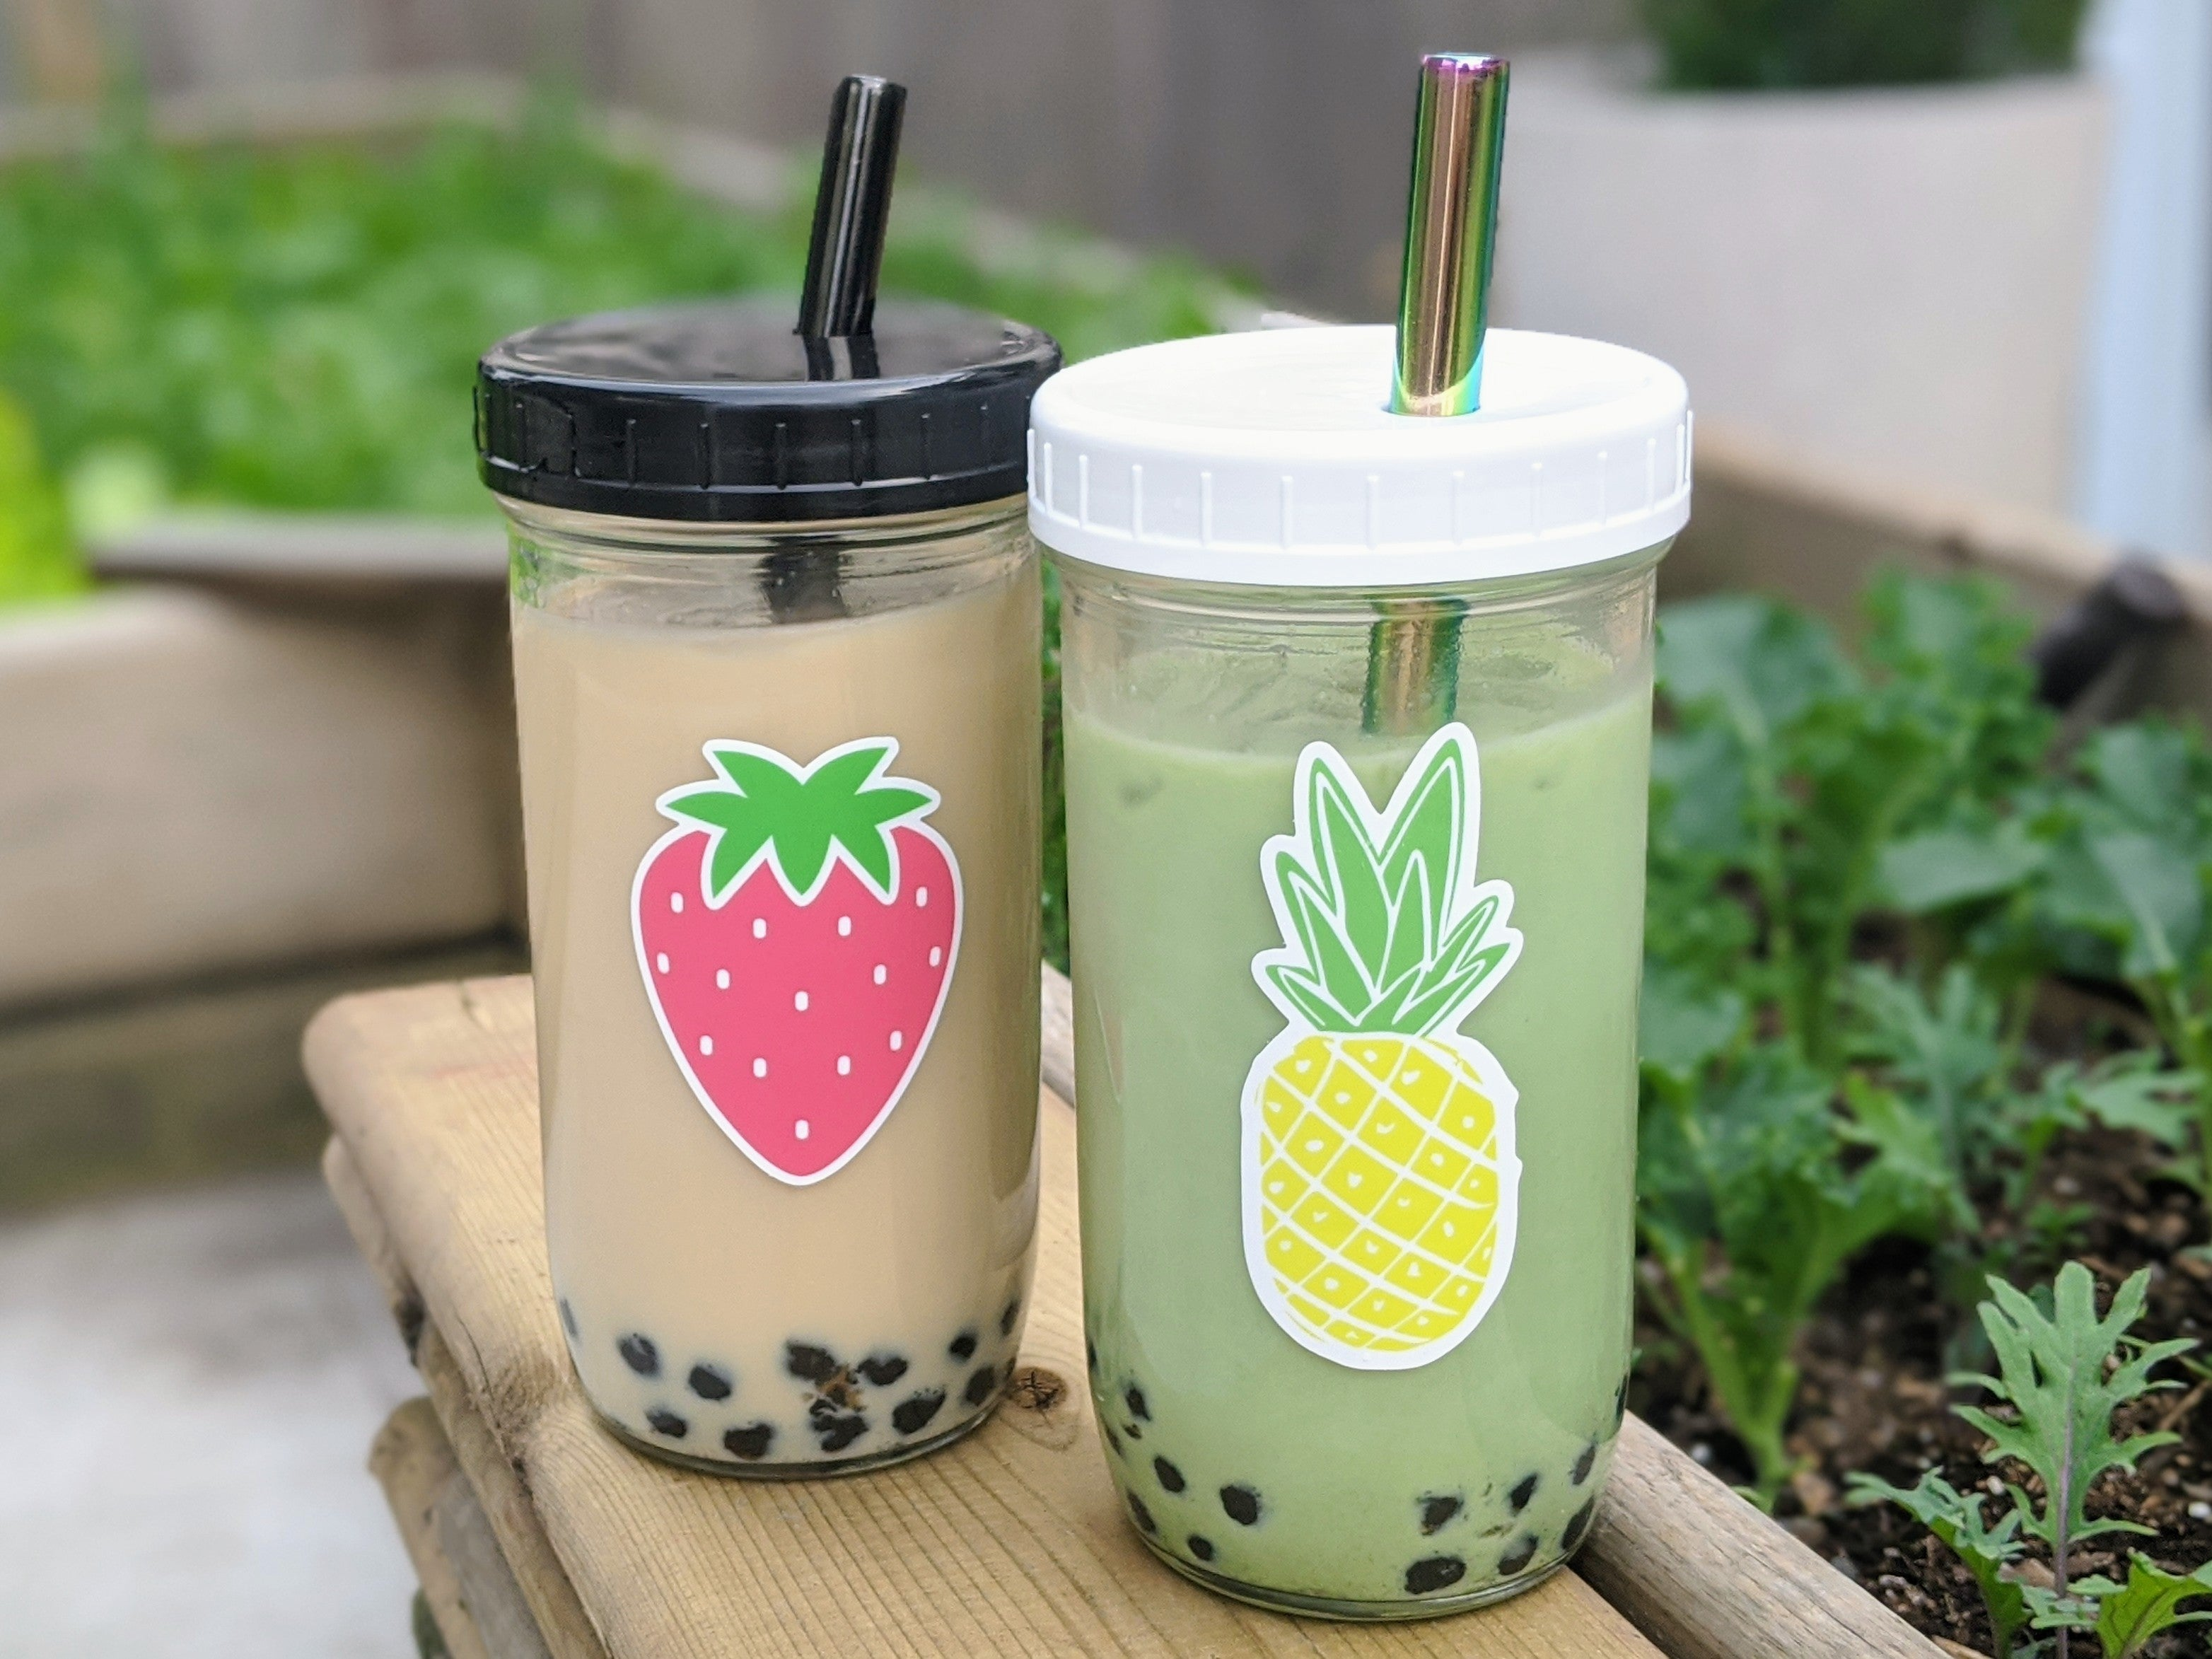 2-PACK Reusable Bubble Tea Cup (Strawberry/Pineapple)